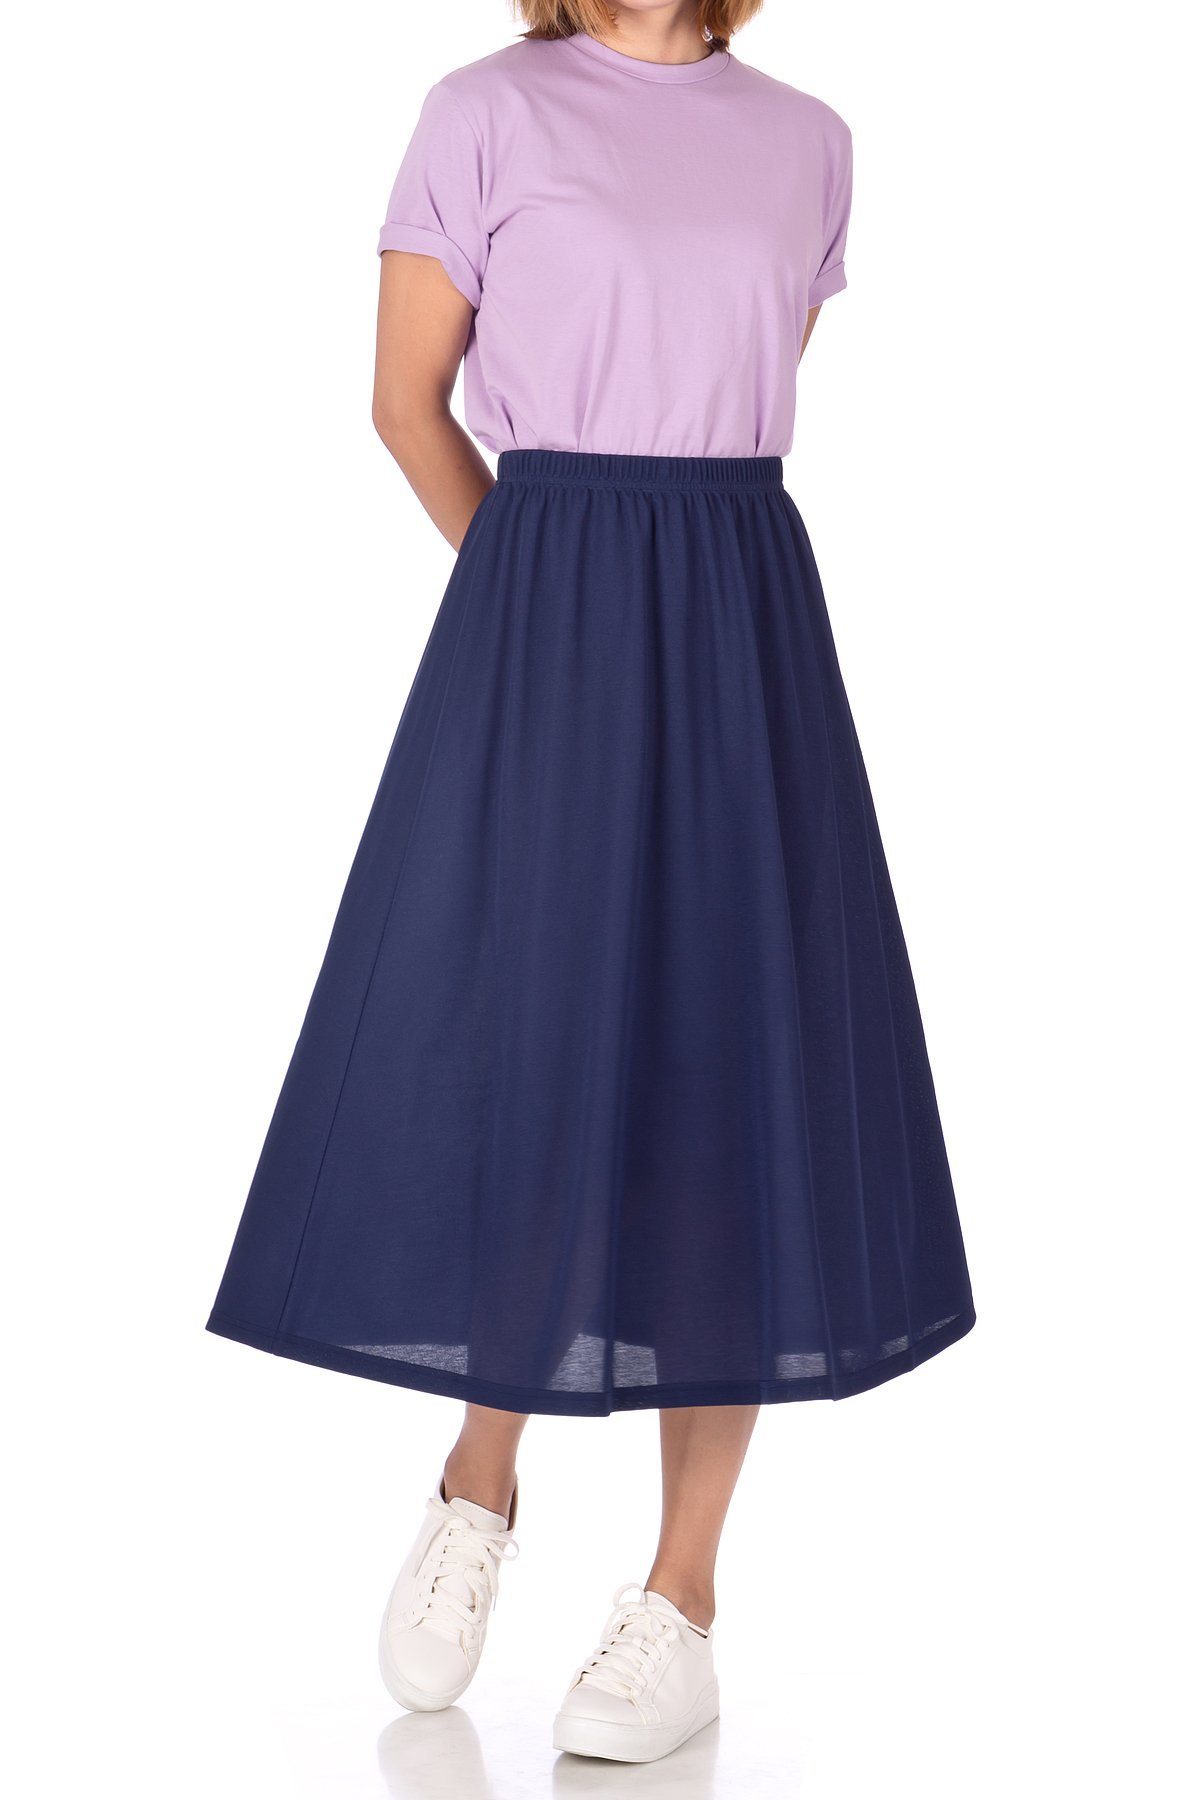 Brilliant Elastic Waist Full Flared Long Skirt Navy 04